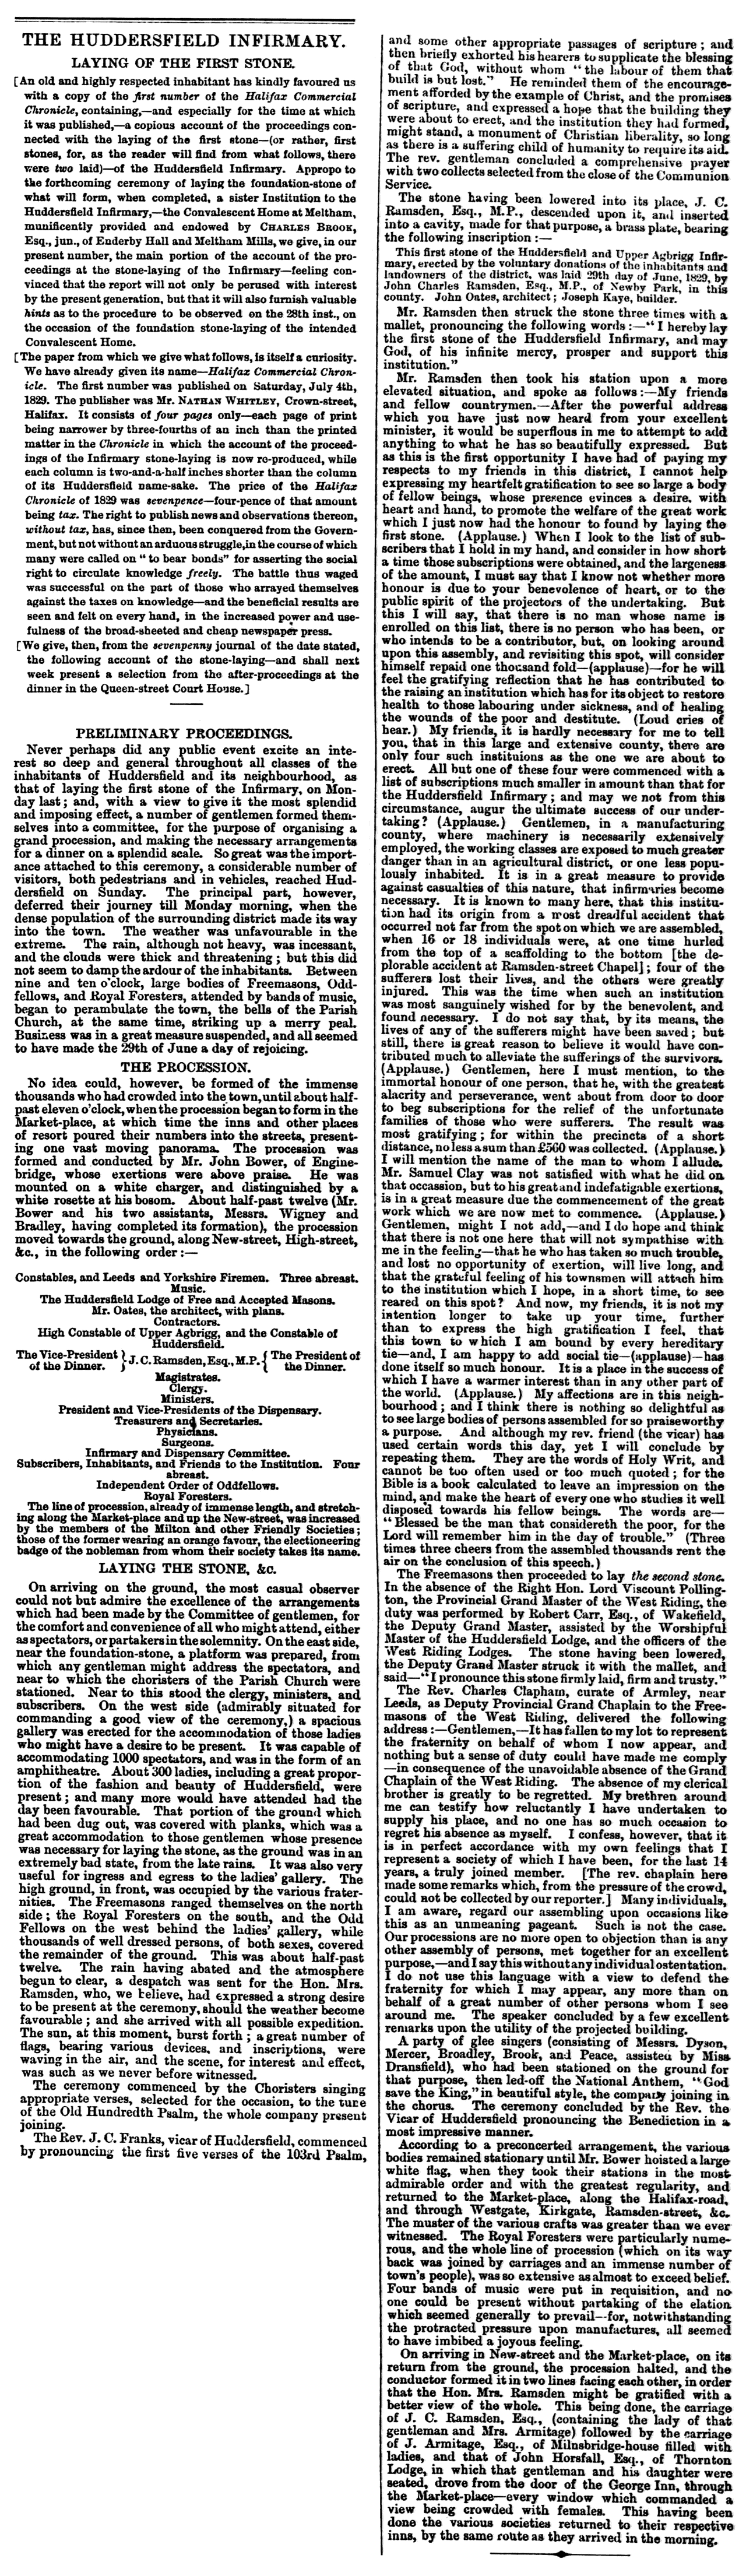 Huddersfield Chronicle 17 October 1868 - The Huddersfield Infirmary.png